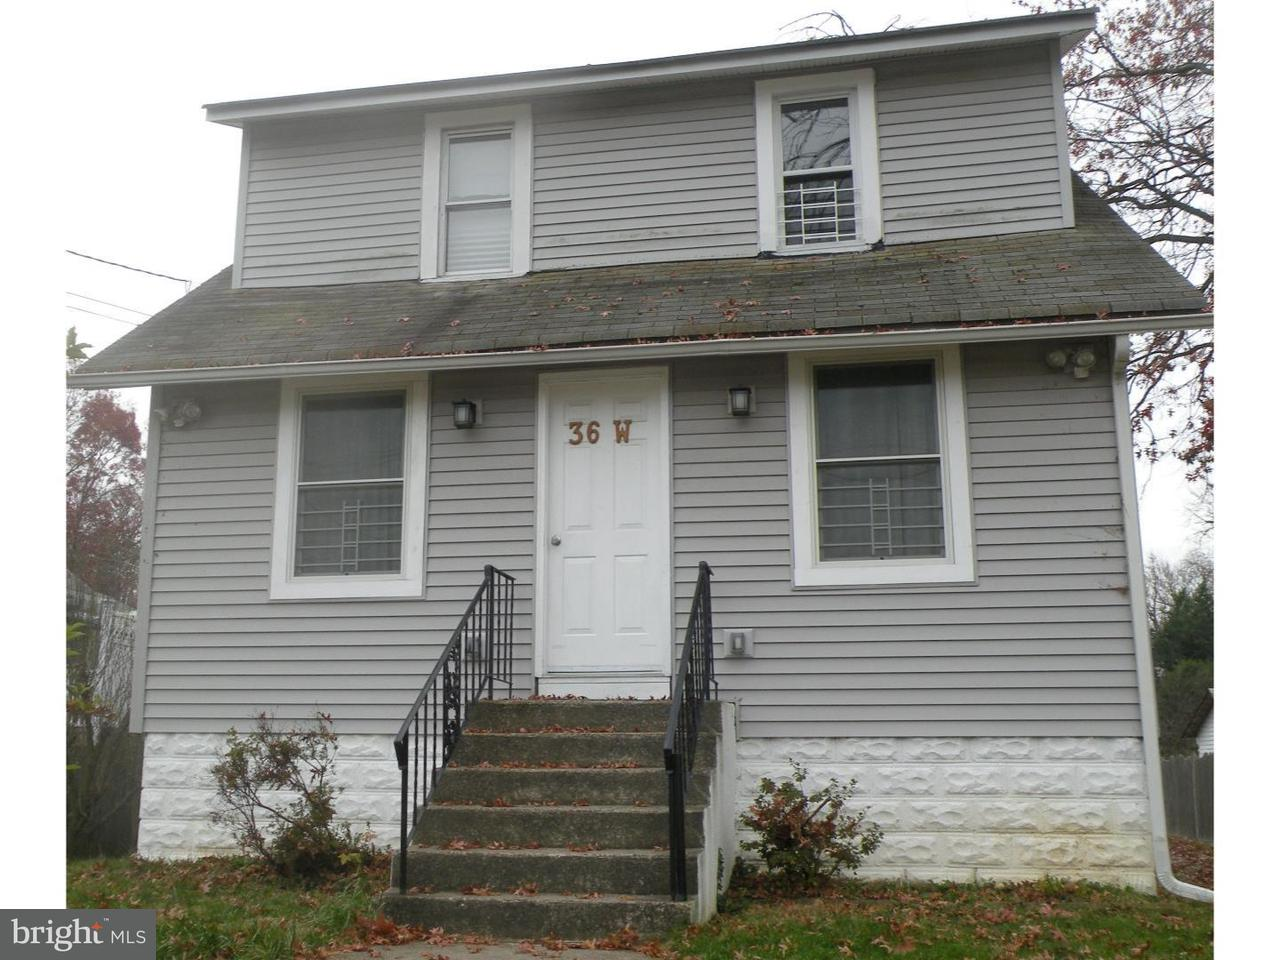 Single Family Home for Rent at 36 W GRADWELL Avenue Maple Shade, New Jersey 08052 United States